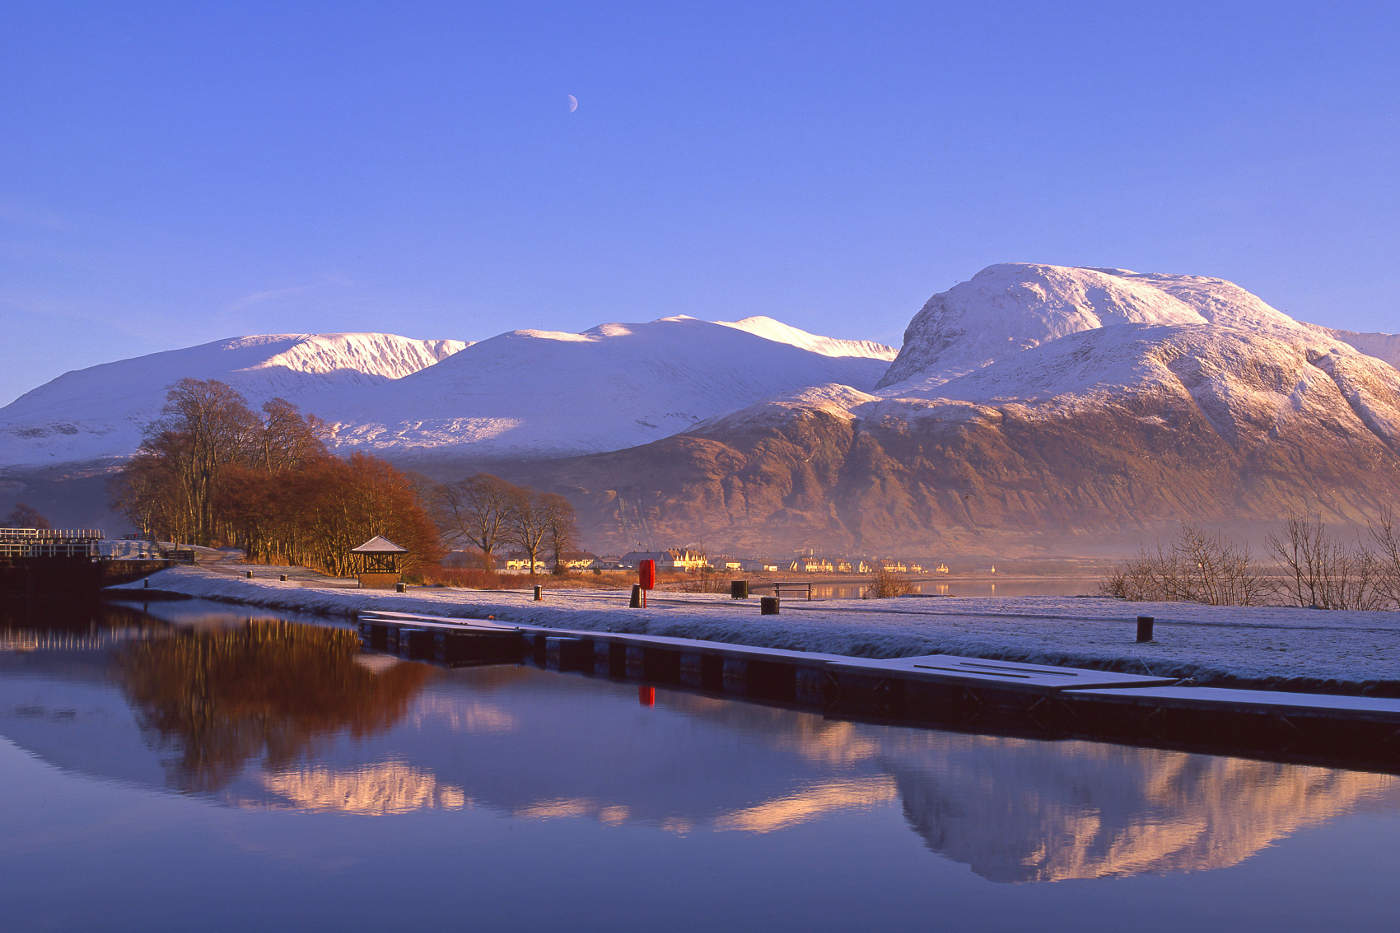 Winter reflections of Ben Nevis as seen from the Corpach Basin, Lochaber